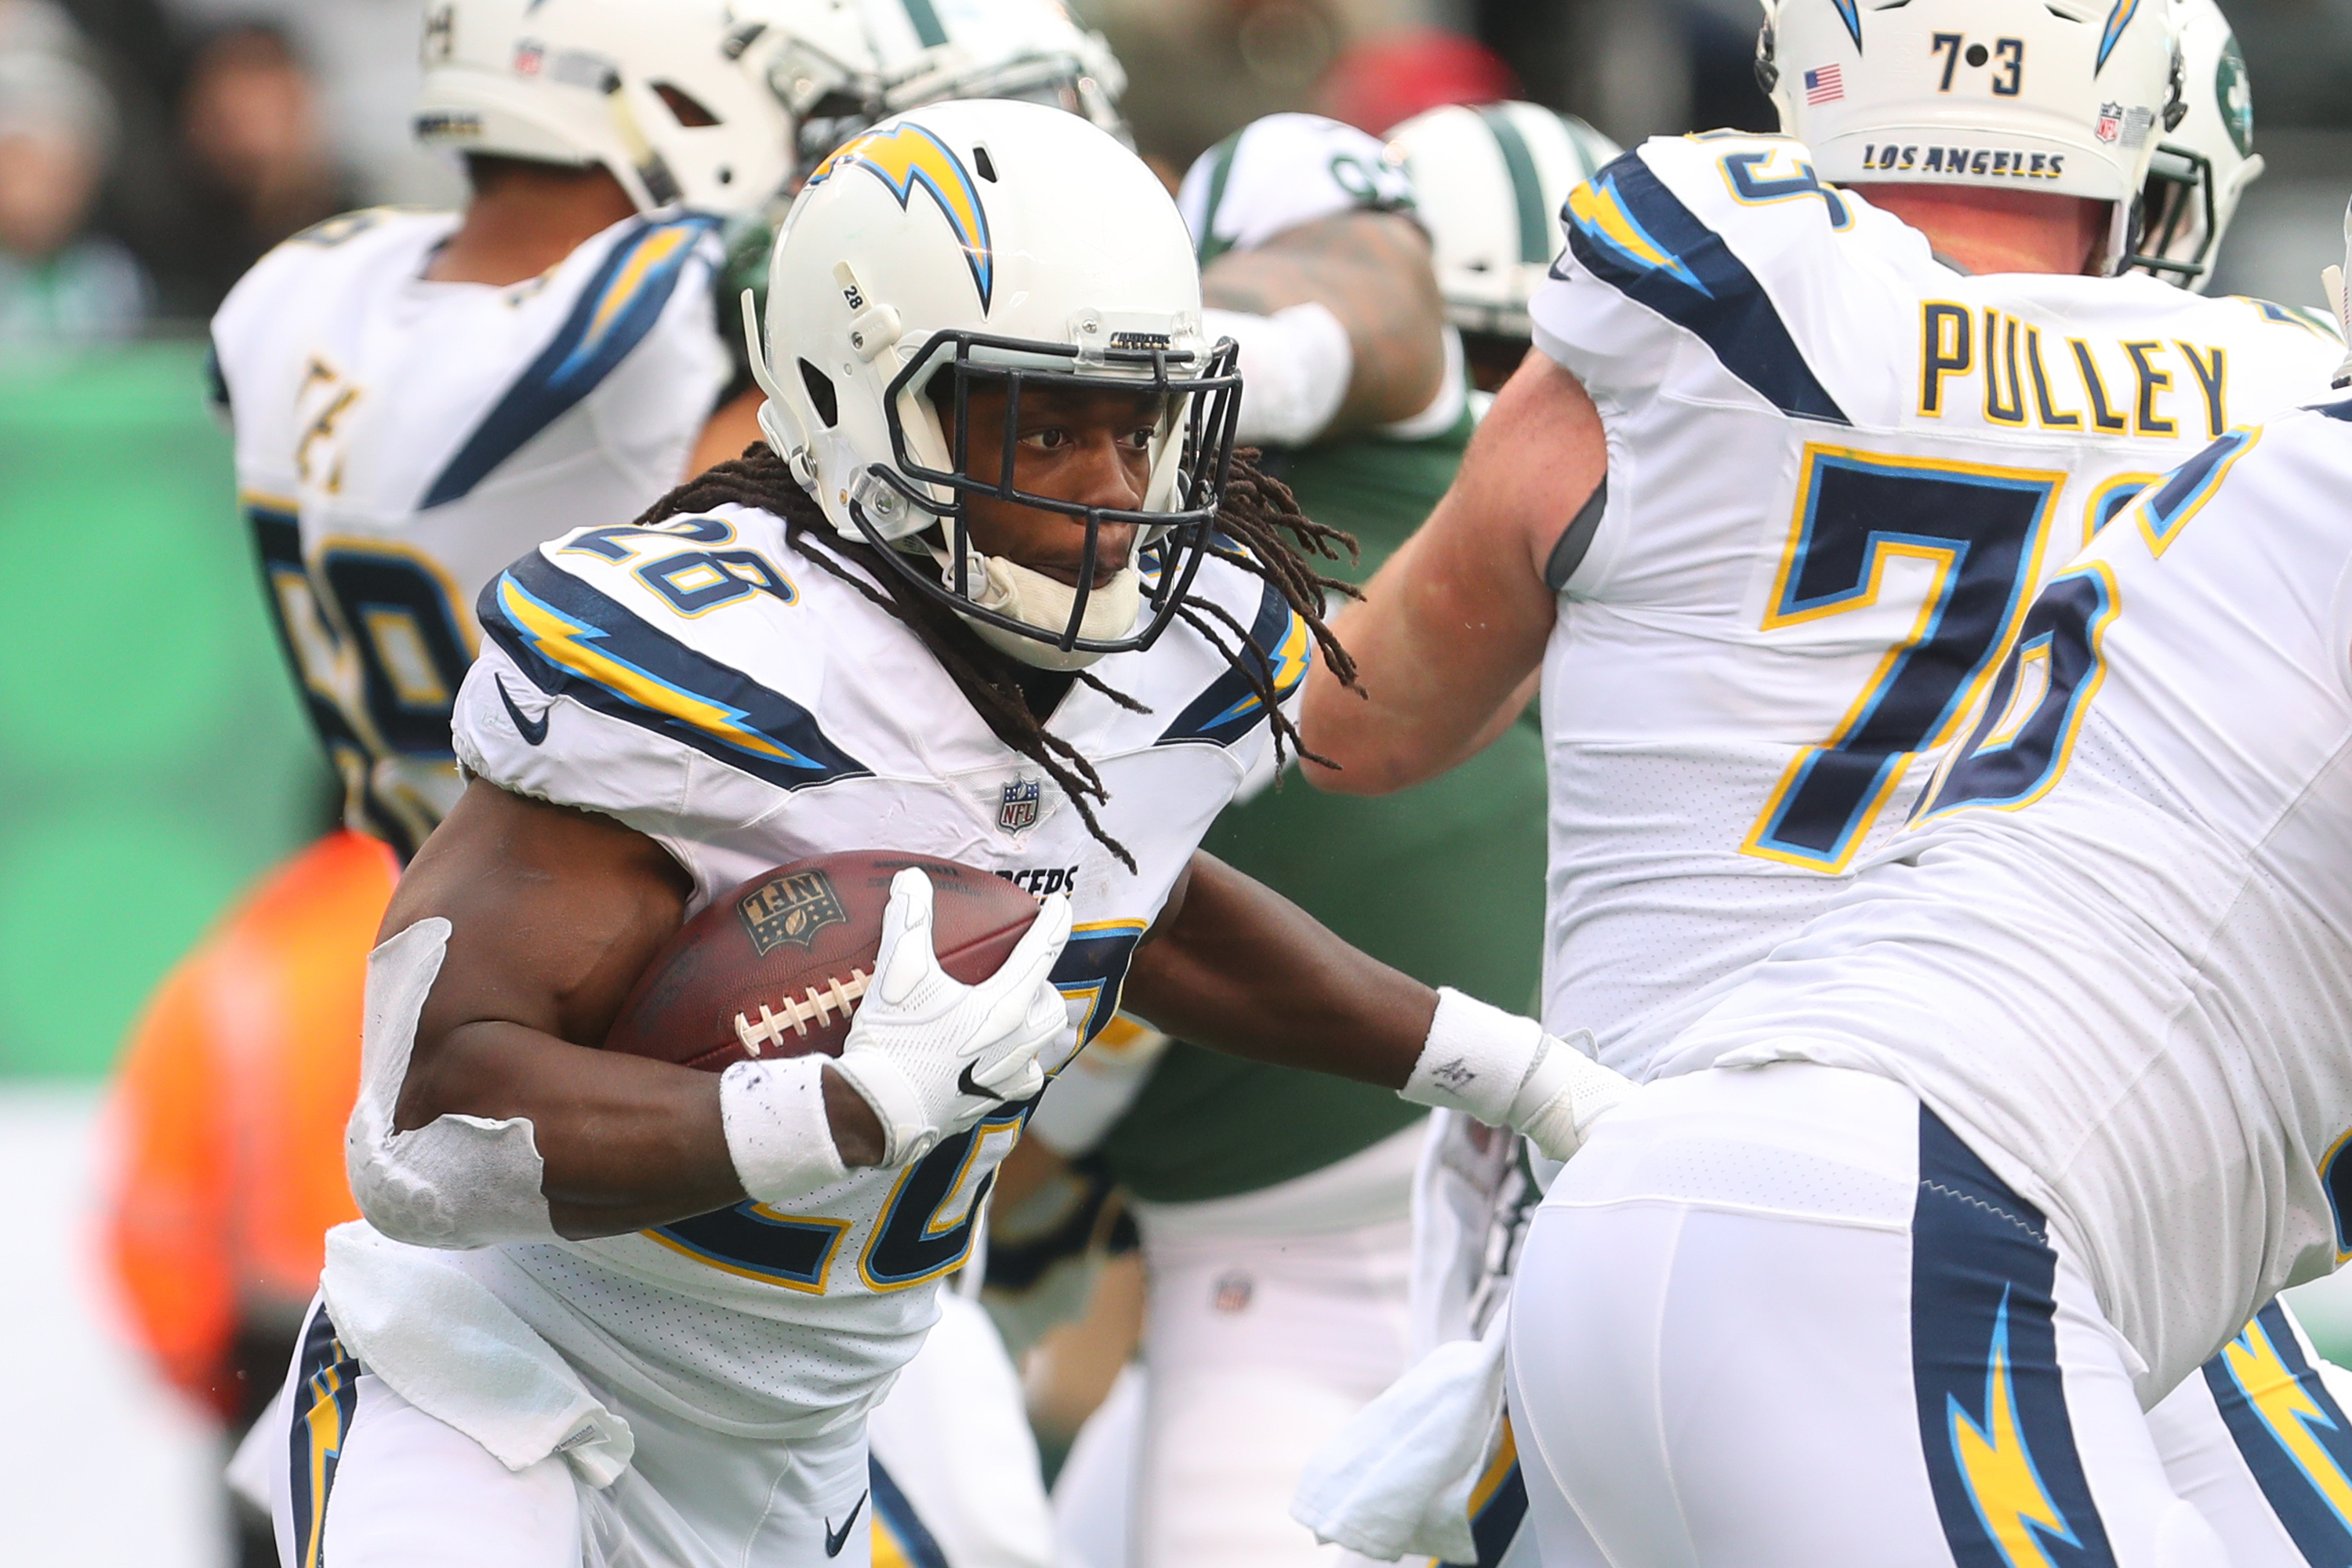 Melvin Gordon #28 of the Los Angeles Chargers runs the ball during the first half against the New York Jets in an NFL game at MetLife Stadium on December 24, 2017 in East Rutherford, New Jersey. (Photo by Ed Mulholland/Getty Images)